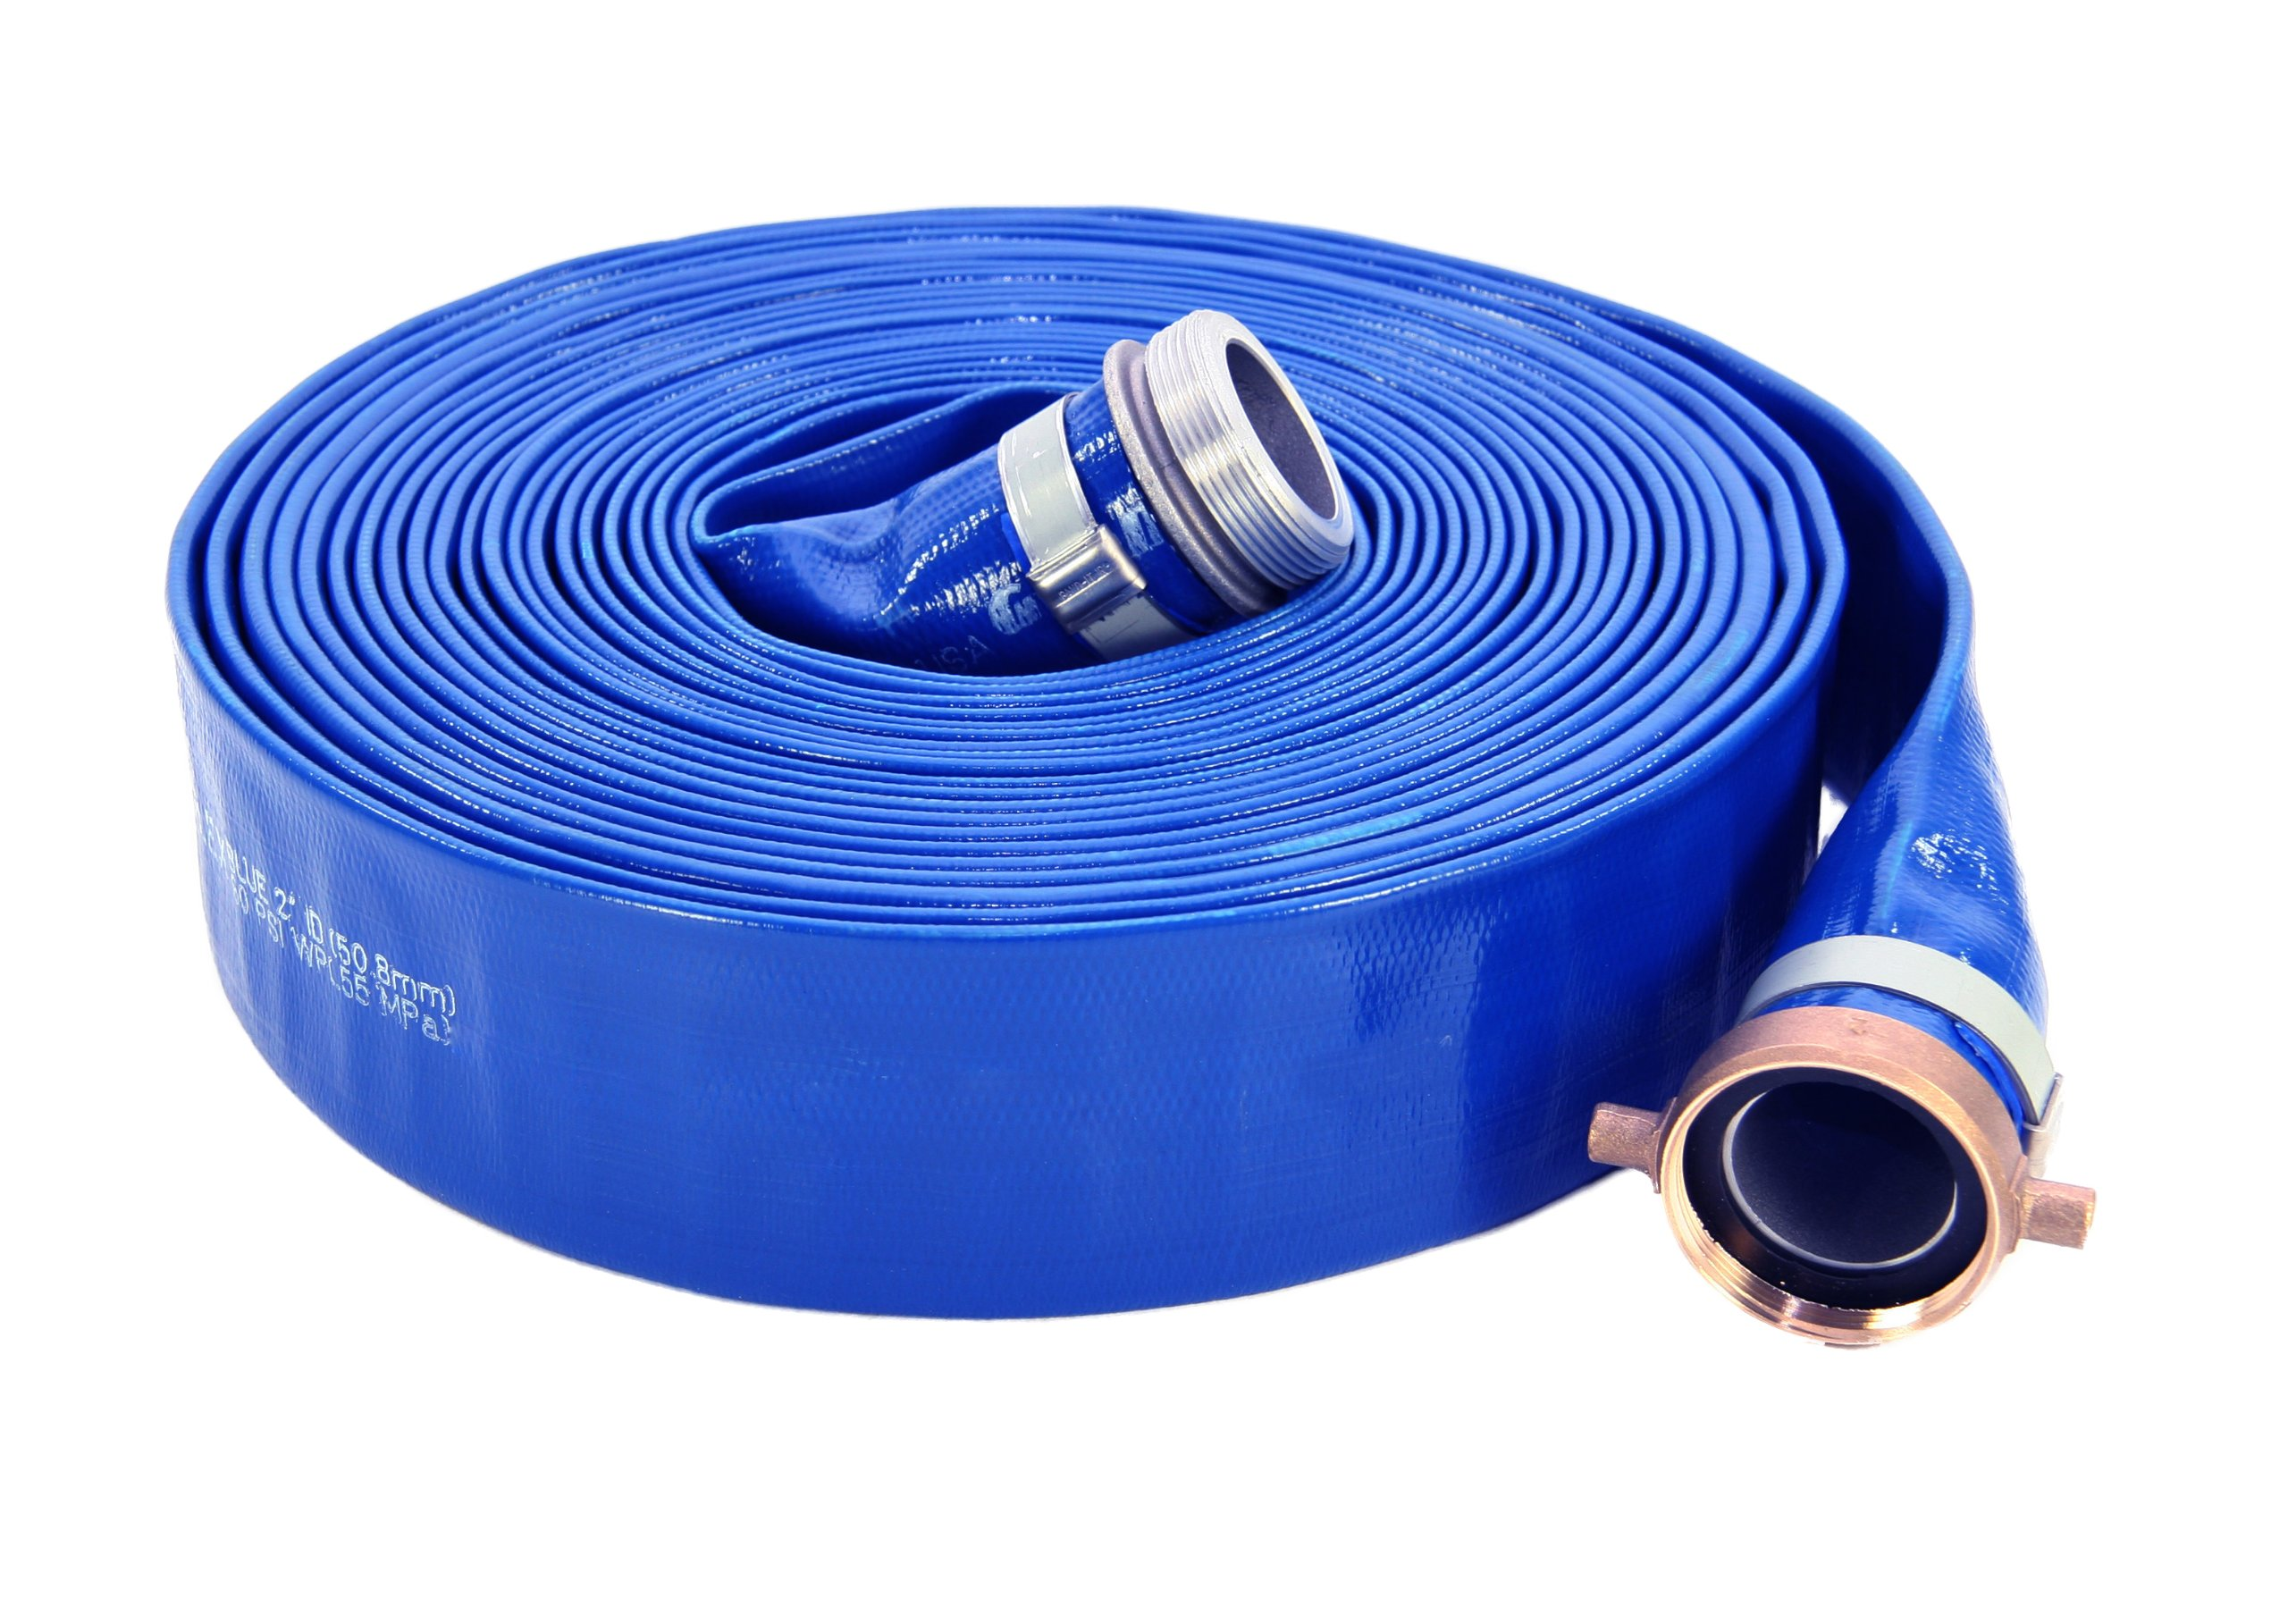 Abbott Rubber PVC Discharge Hose Assembly, Blue, 1-1/2'' Male X Female NPSM, 70 psi Max Pressure, 50' Length, 1-1/2'' ID